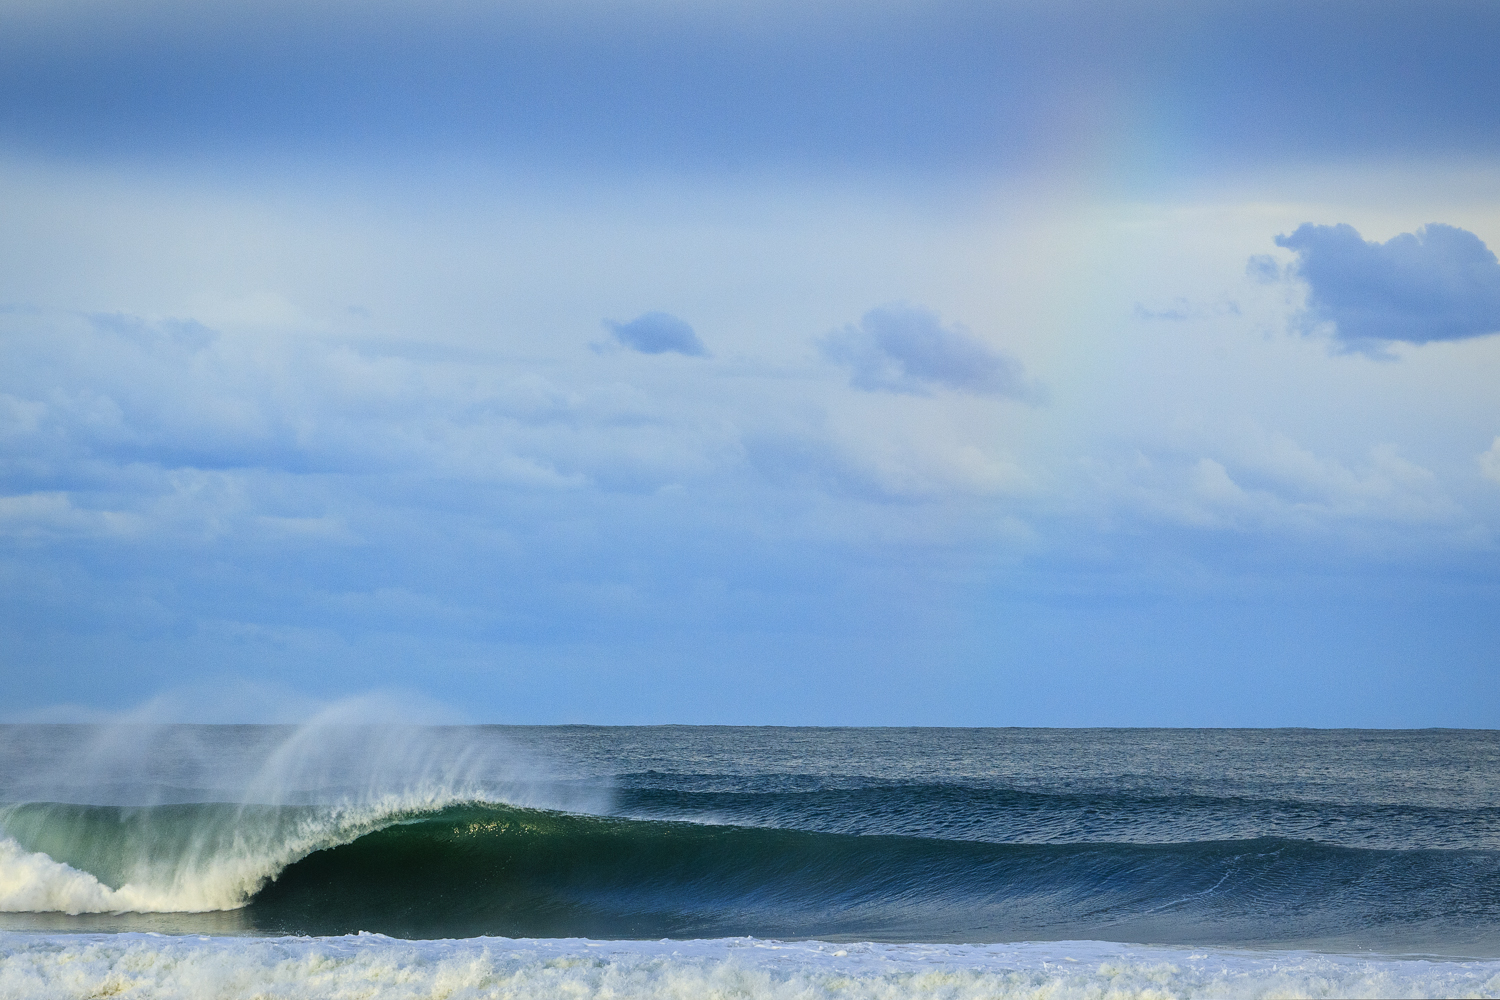 Barrel at the end of the rainbow..